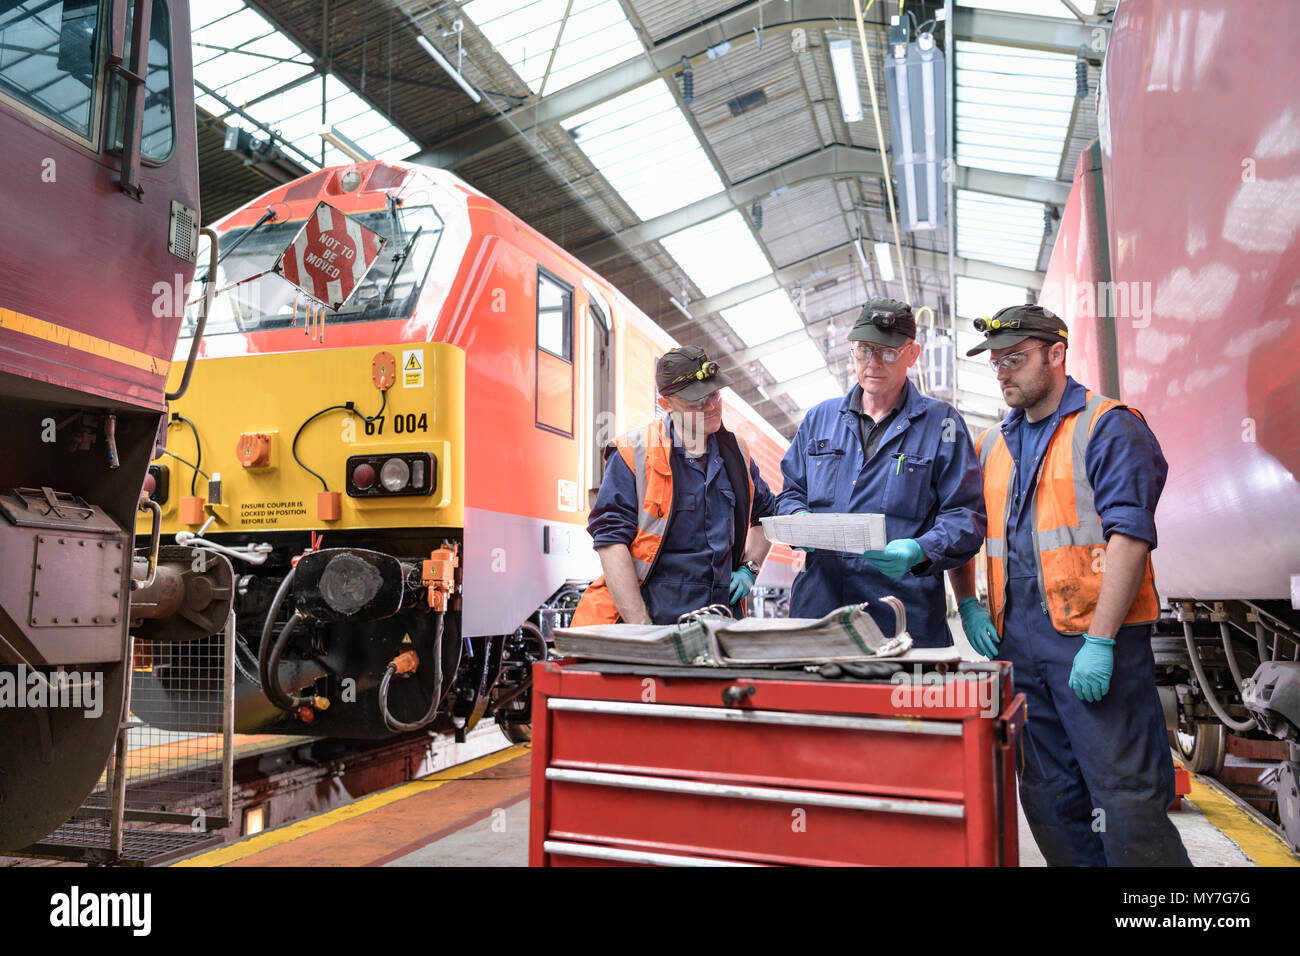 Engineer team discussing project on refurbished locomotive in train engineering factory - Stock Image